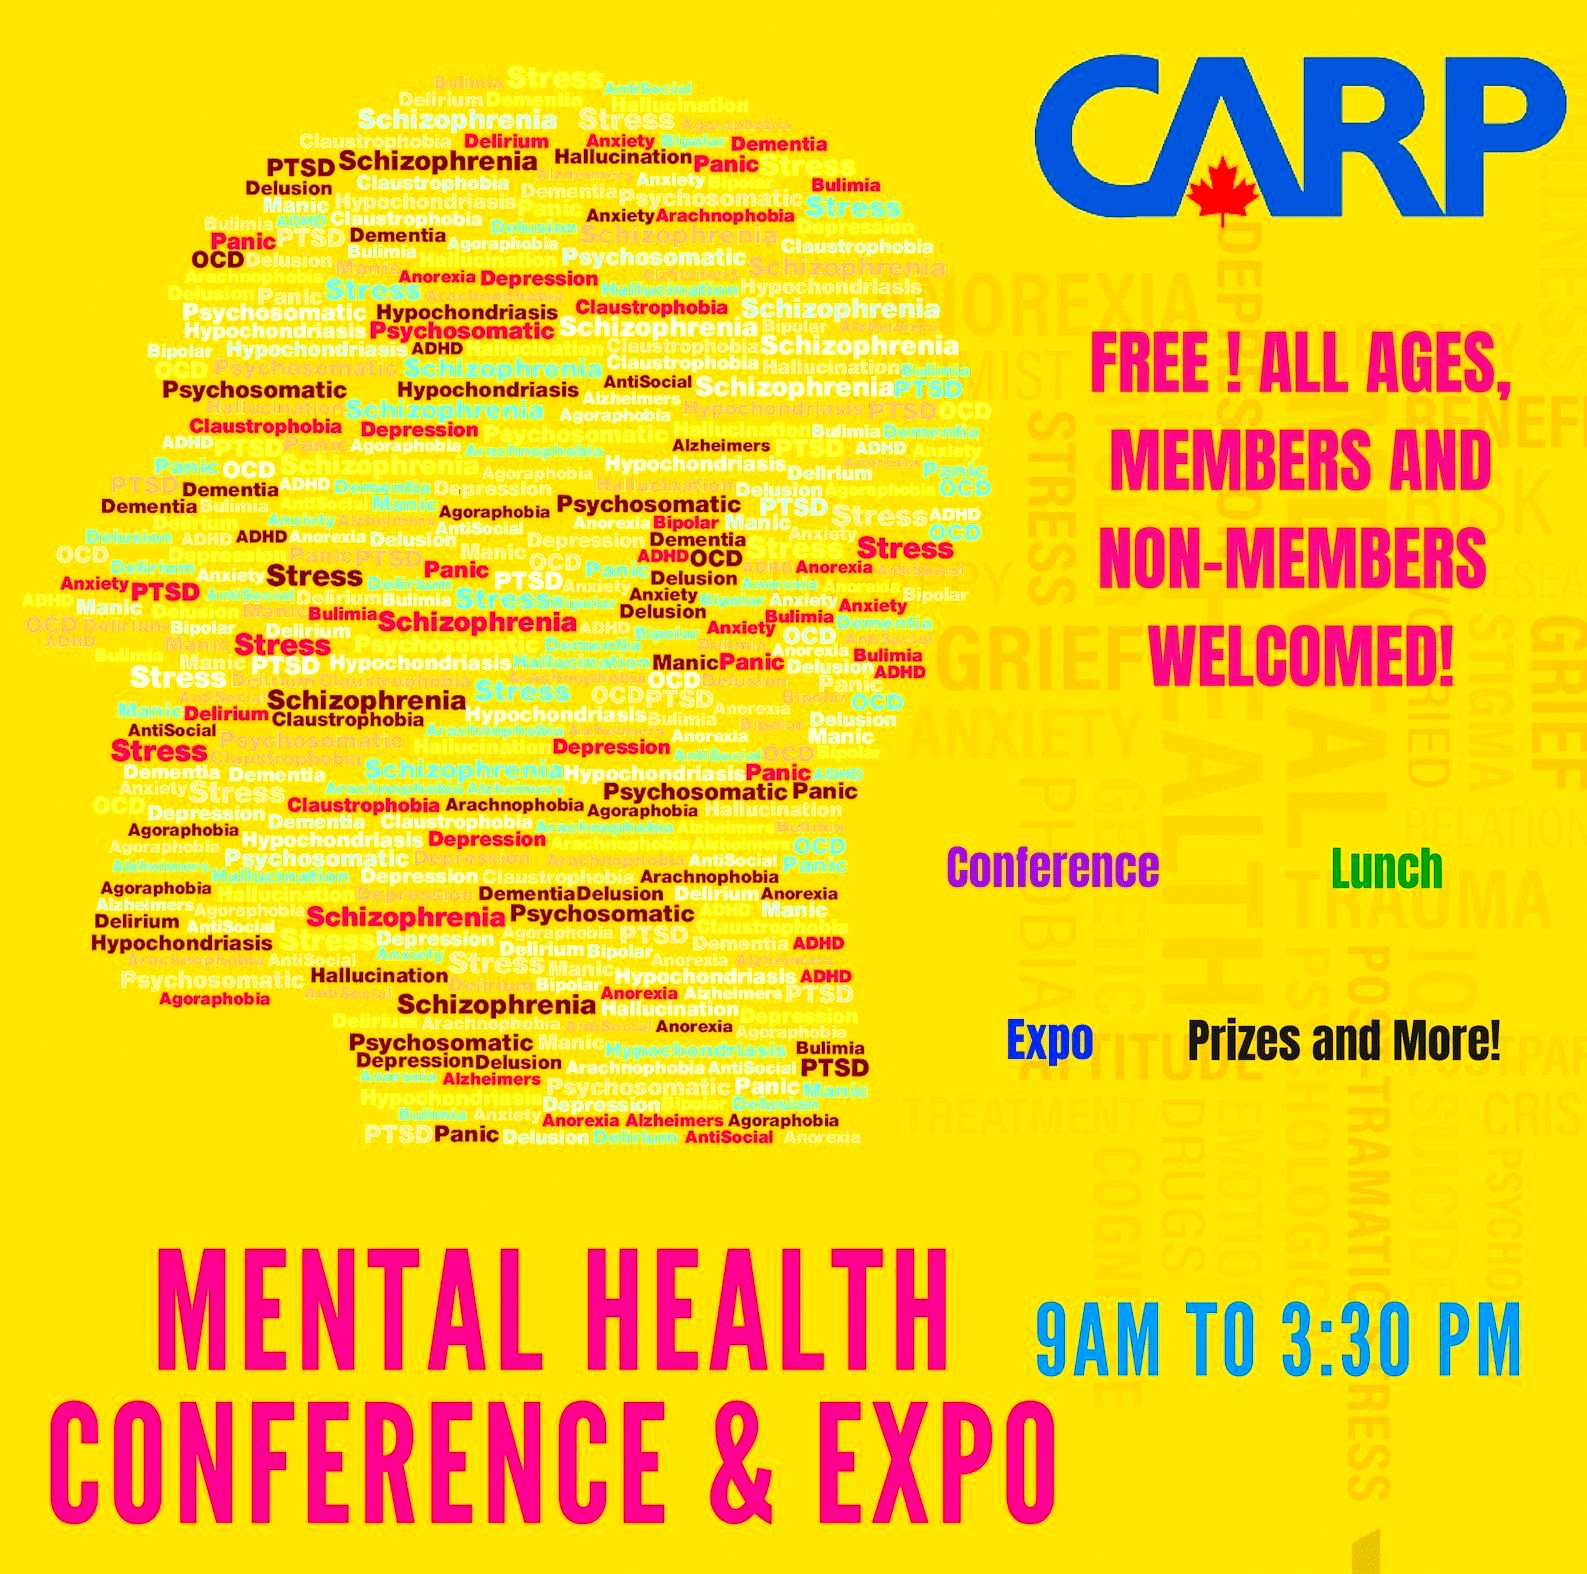 Google image from https://www.eventbrite.com/e/free-mental-health-conference-expo-tickets-59335591351